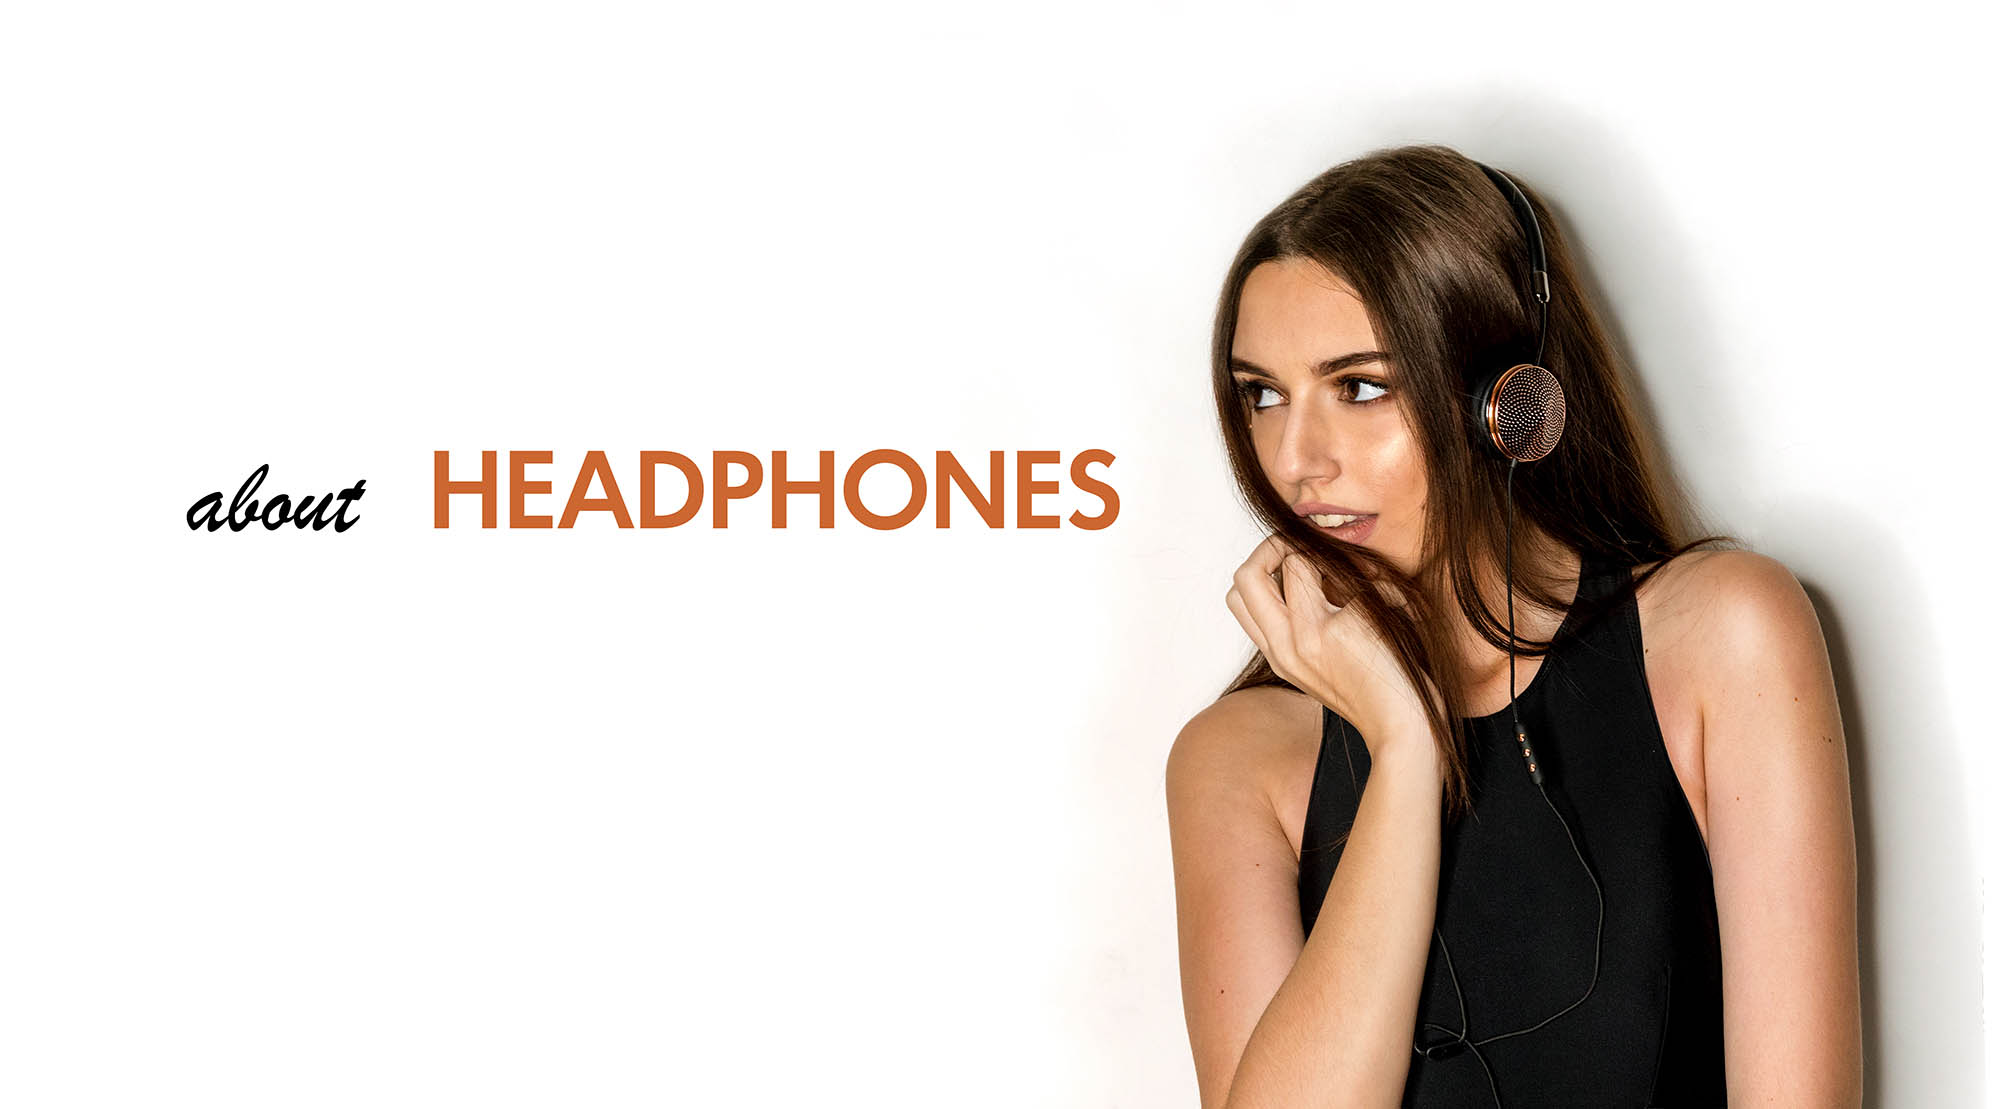 Headphones, as part of the outfit